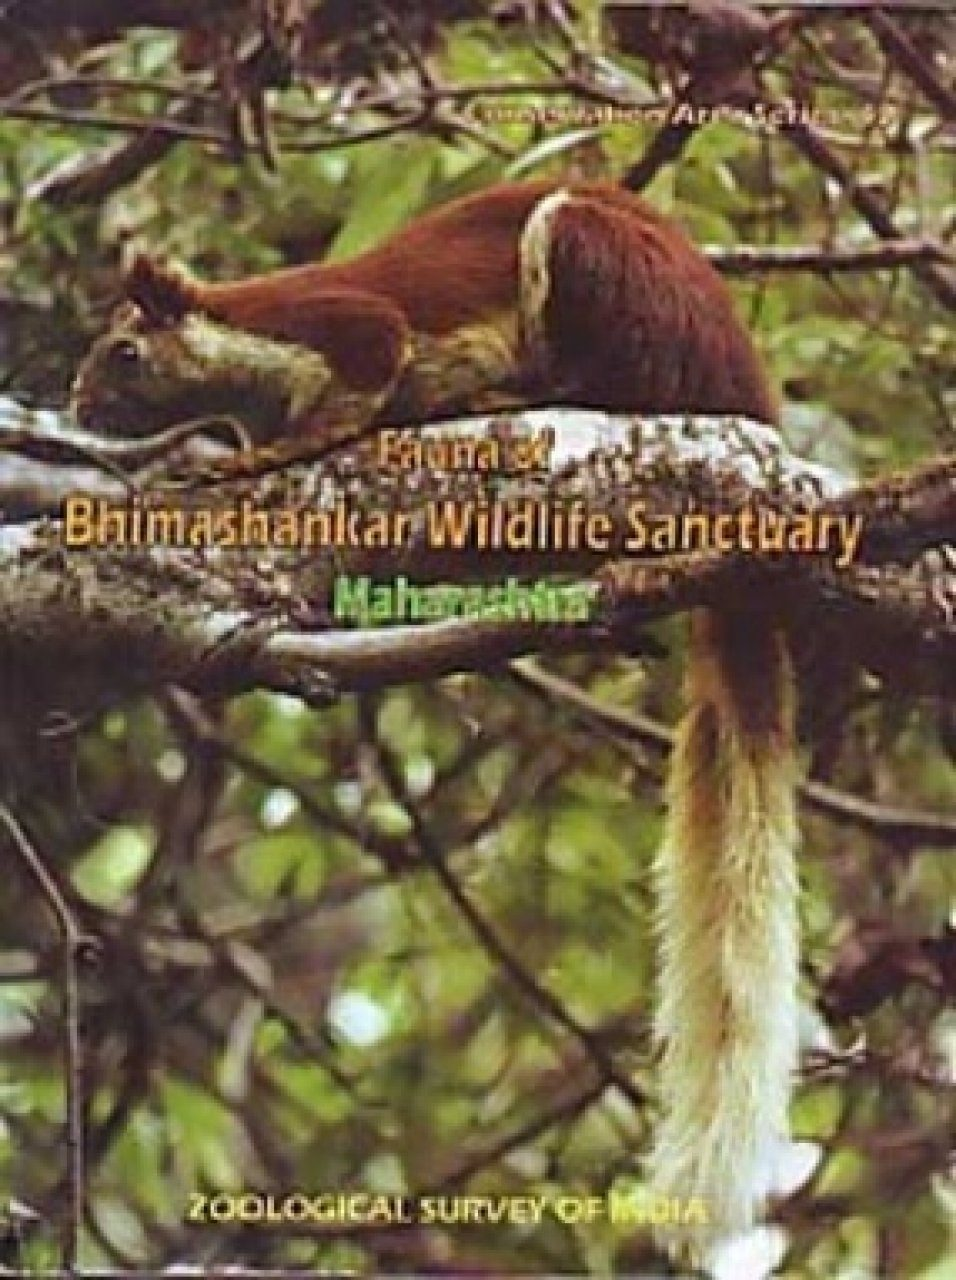 Fauna of Bhimashankar Wildlife Sanctuary, Maharashtra